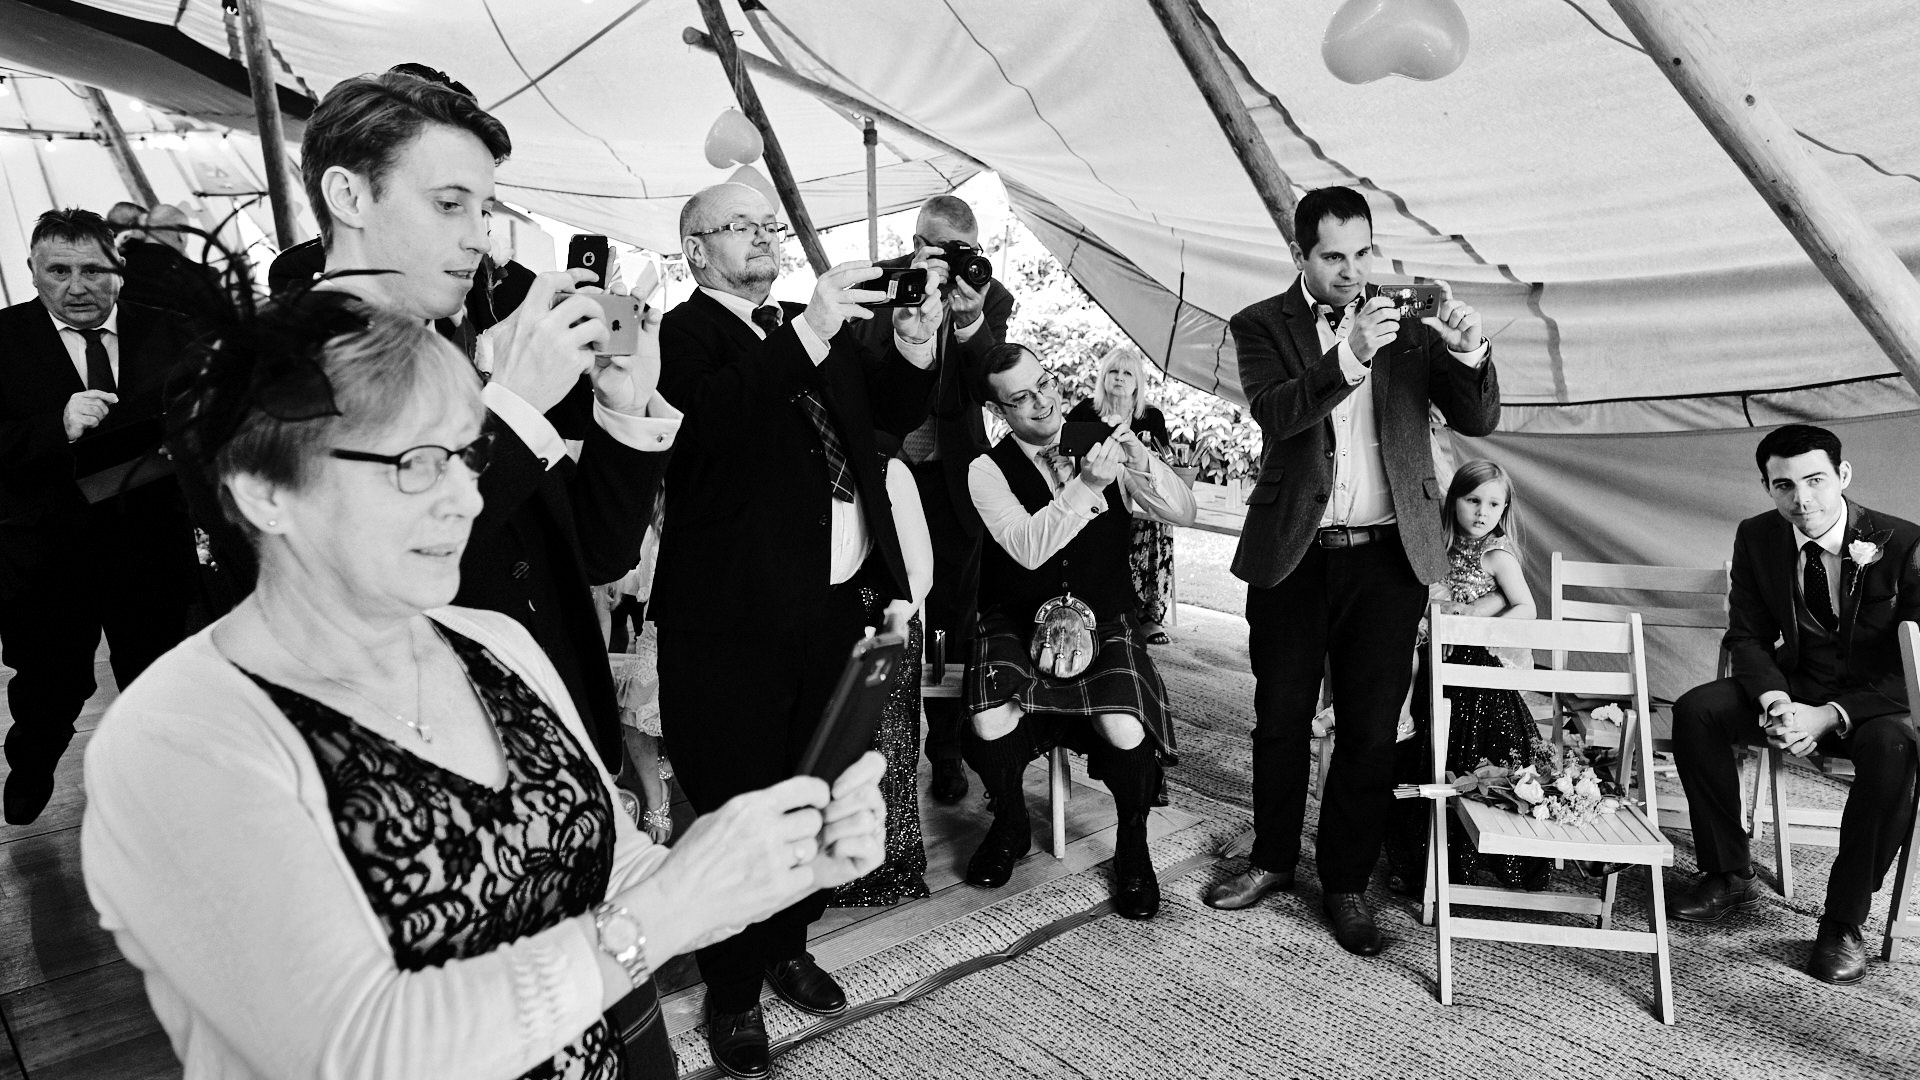 black and white photograph of wedding guests photographing the bridal party during the signing of the register